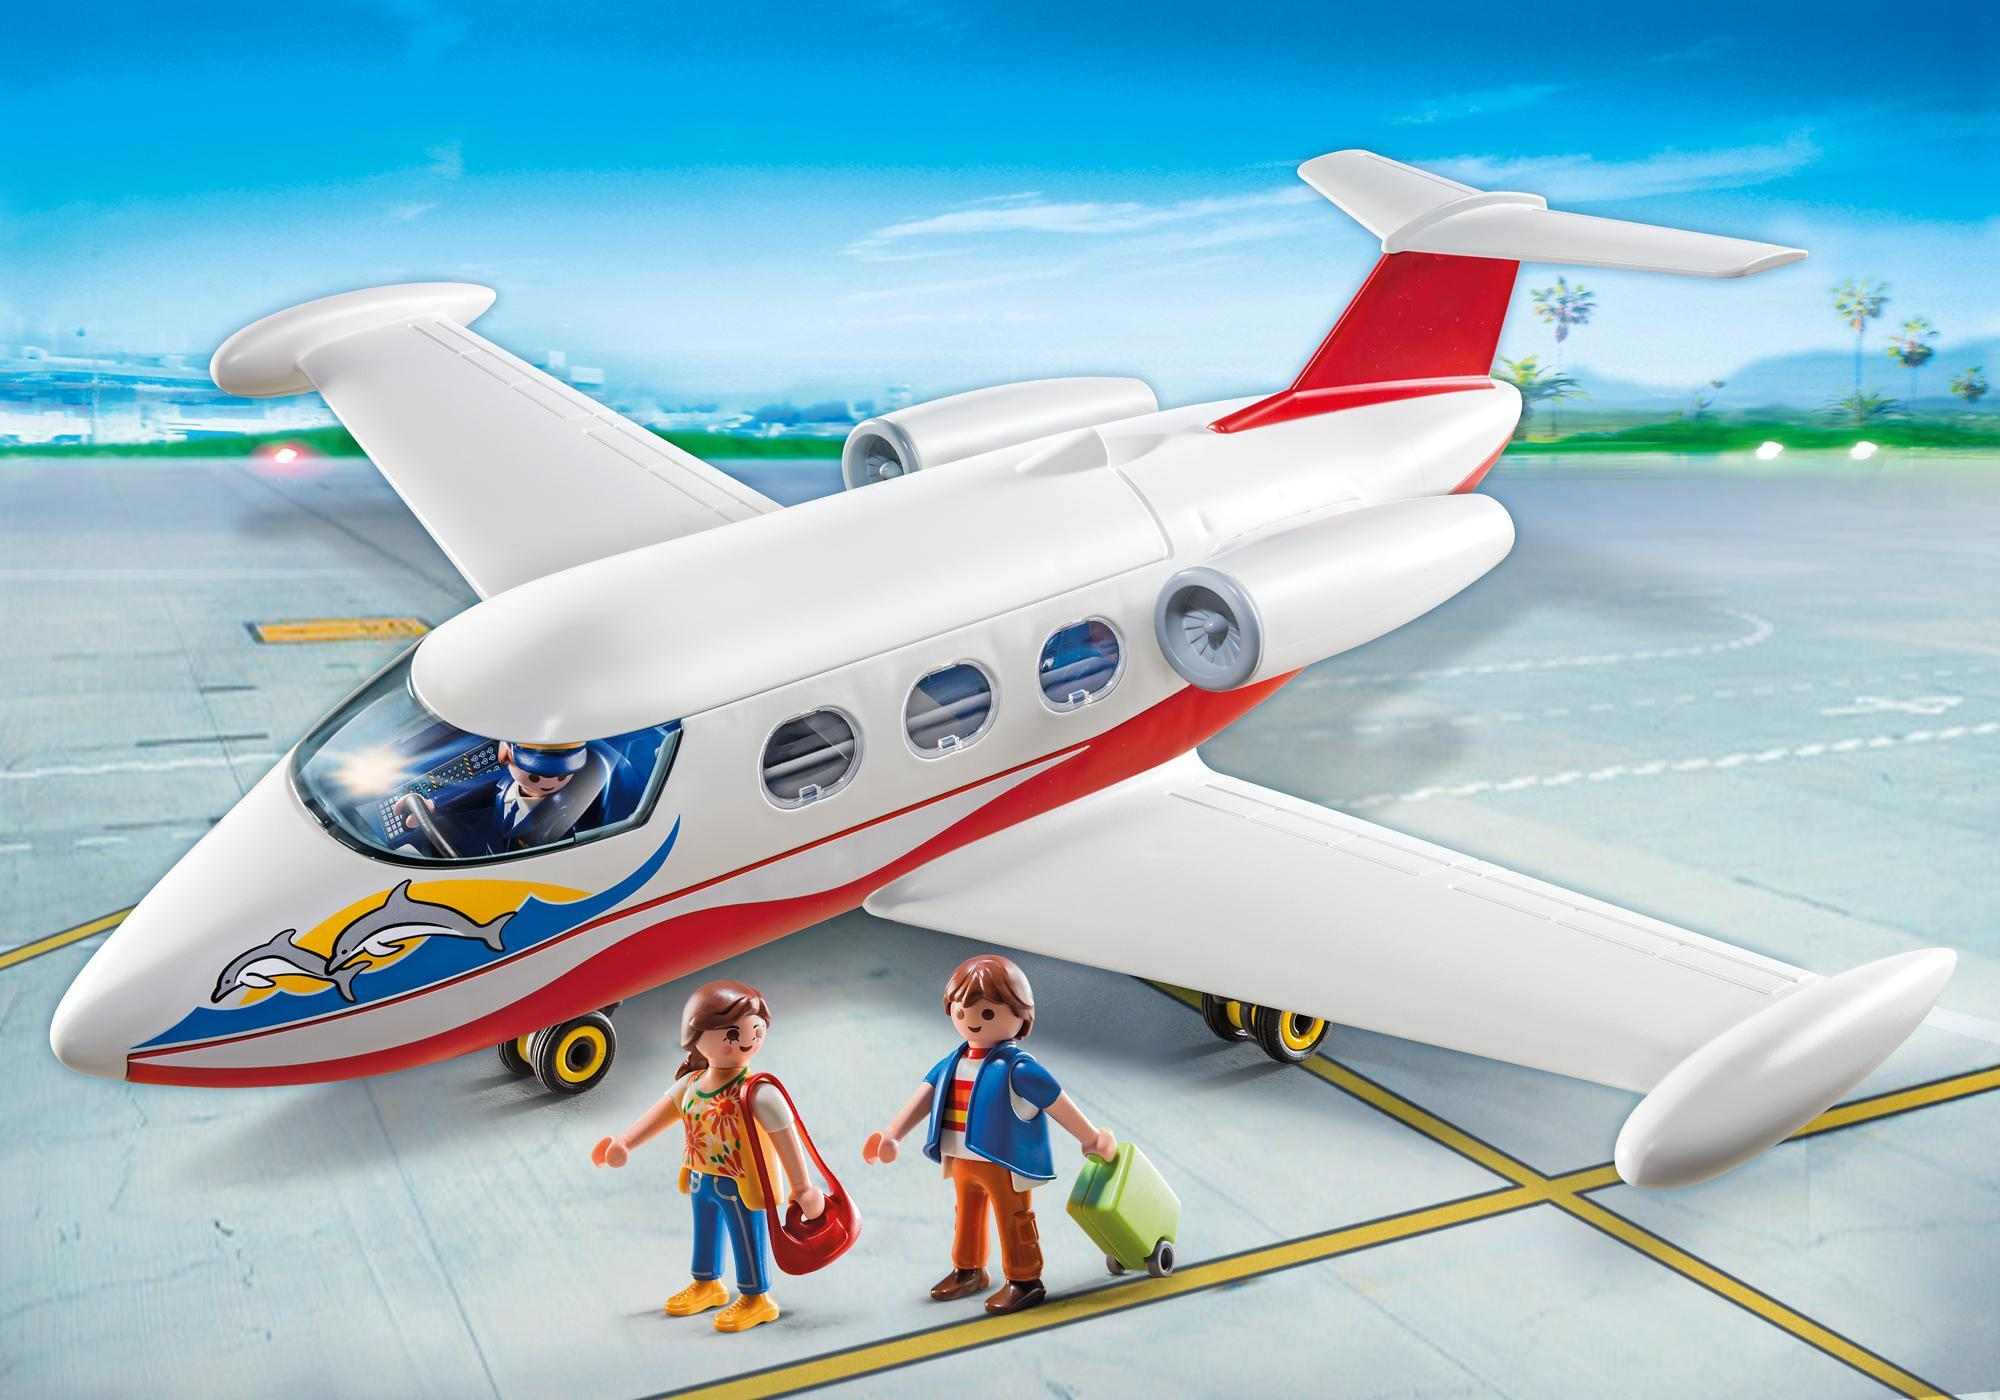 http://media.playmobil.com/i/playmobil/6081_product_detail/Avion avec pilote et touristes